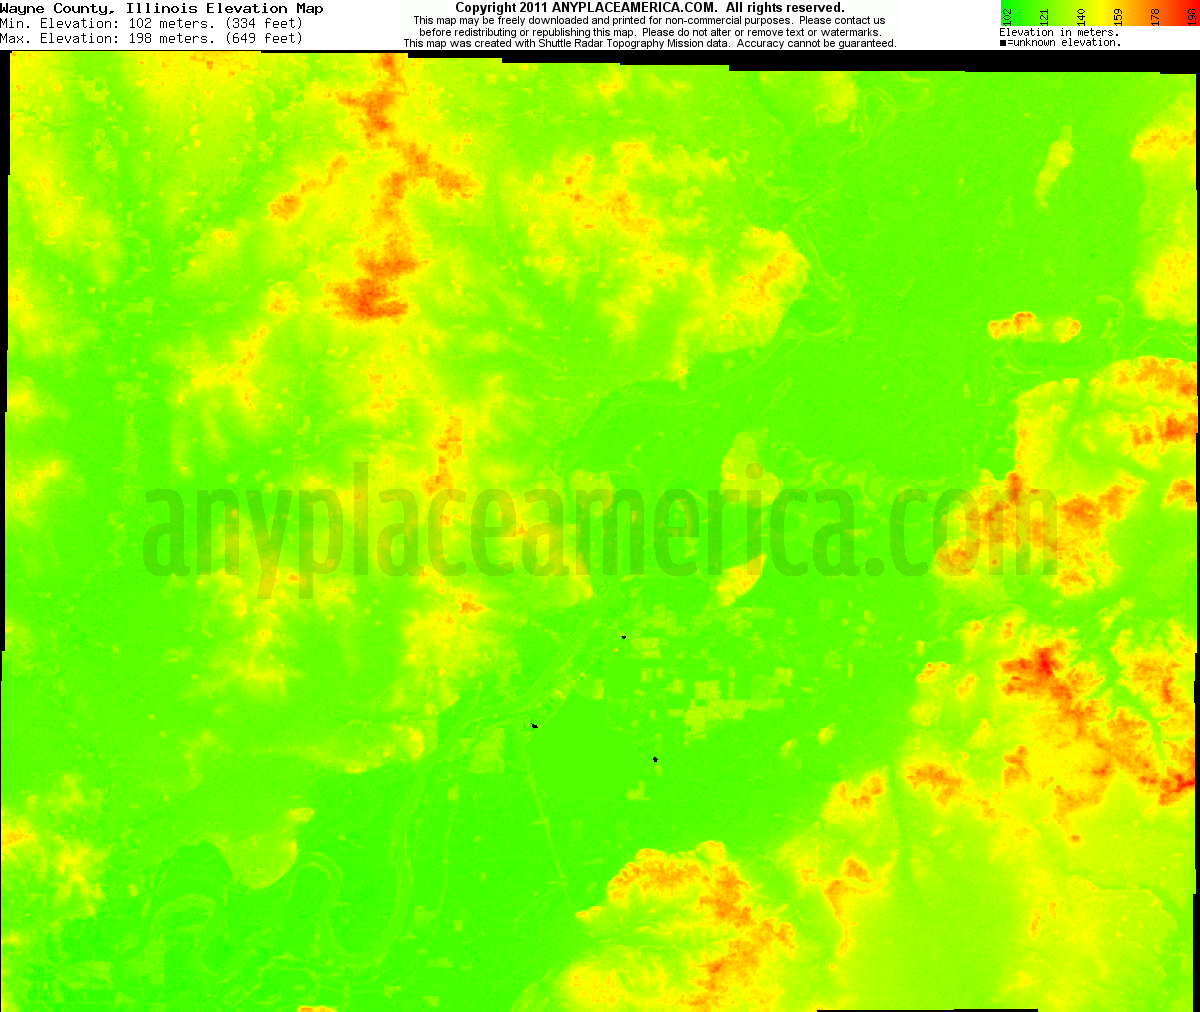 Illinois wayne county johnsonville - Download Wayne County Elevation Map